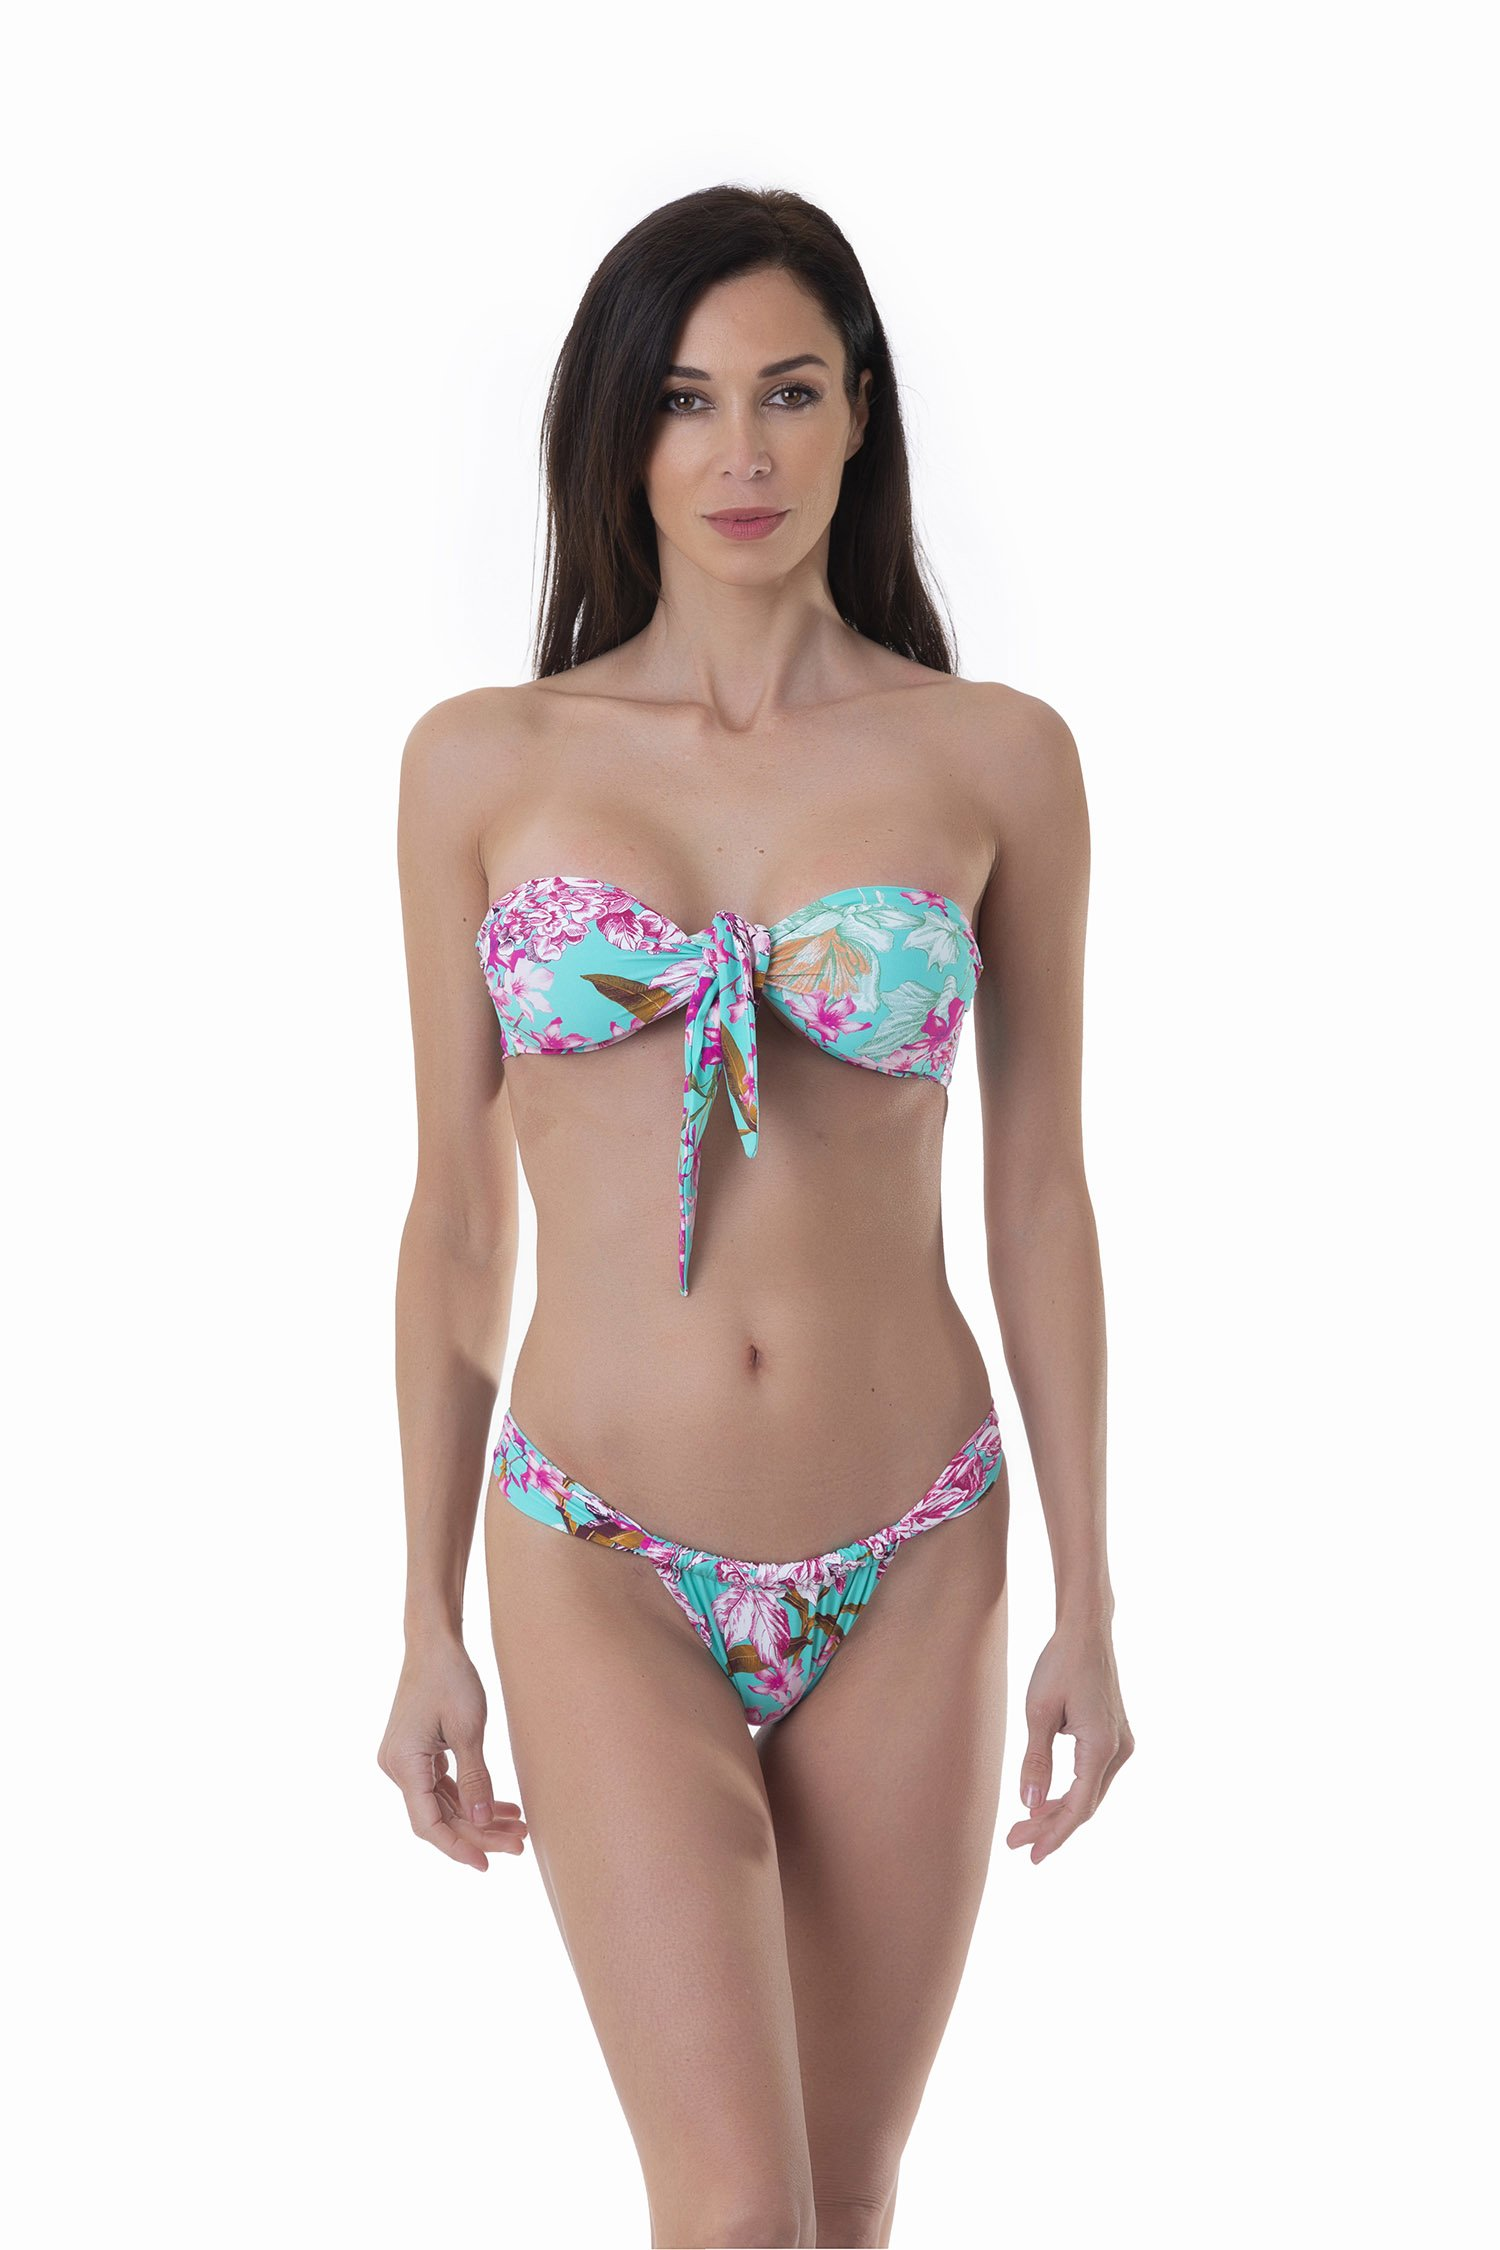 PRINTED BANDEAU BIKINI WITH CENTRAL KNOT AND CHEEKY BOTTOM - Fiori Azzurro